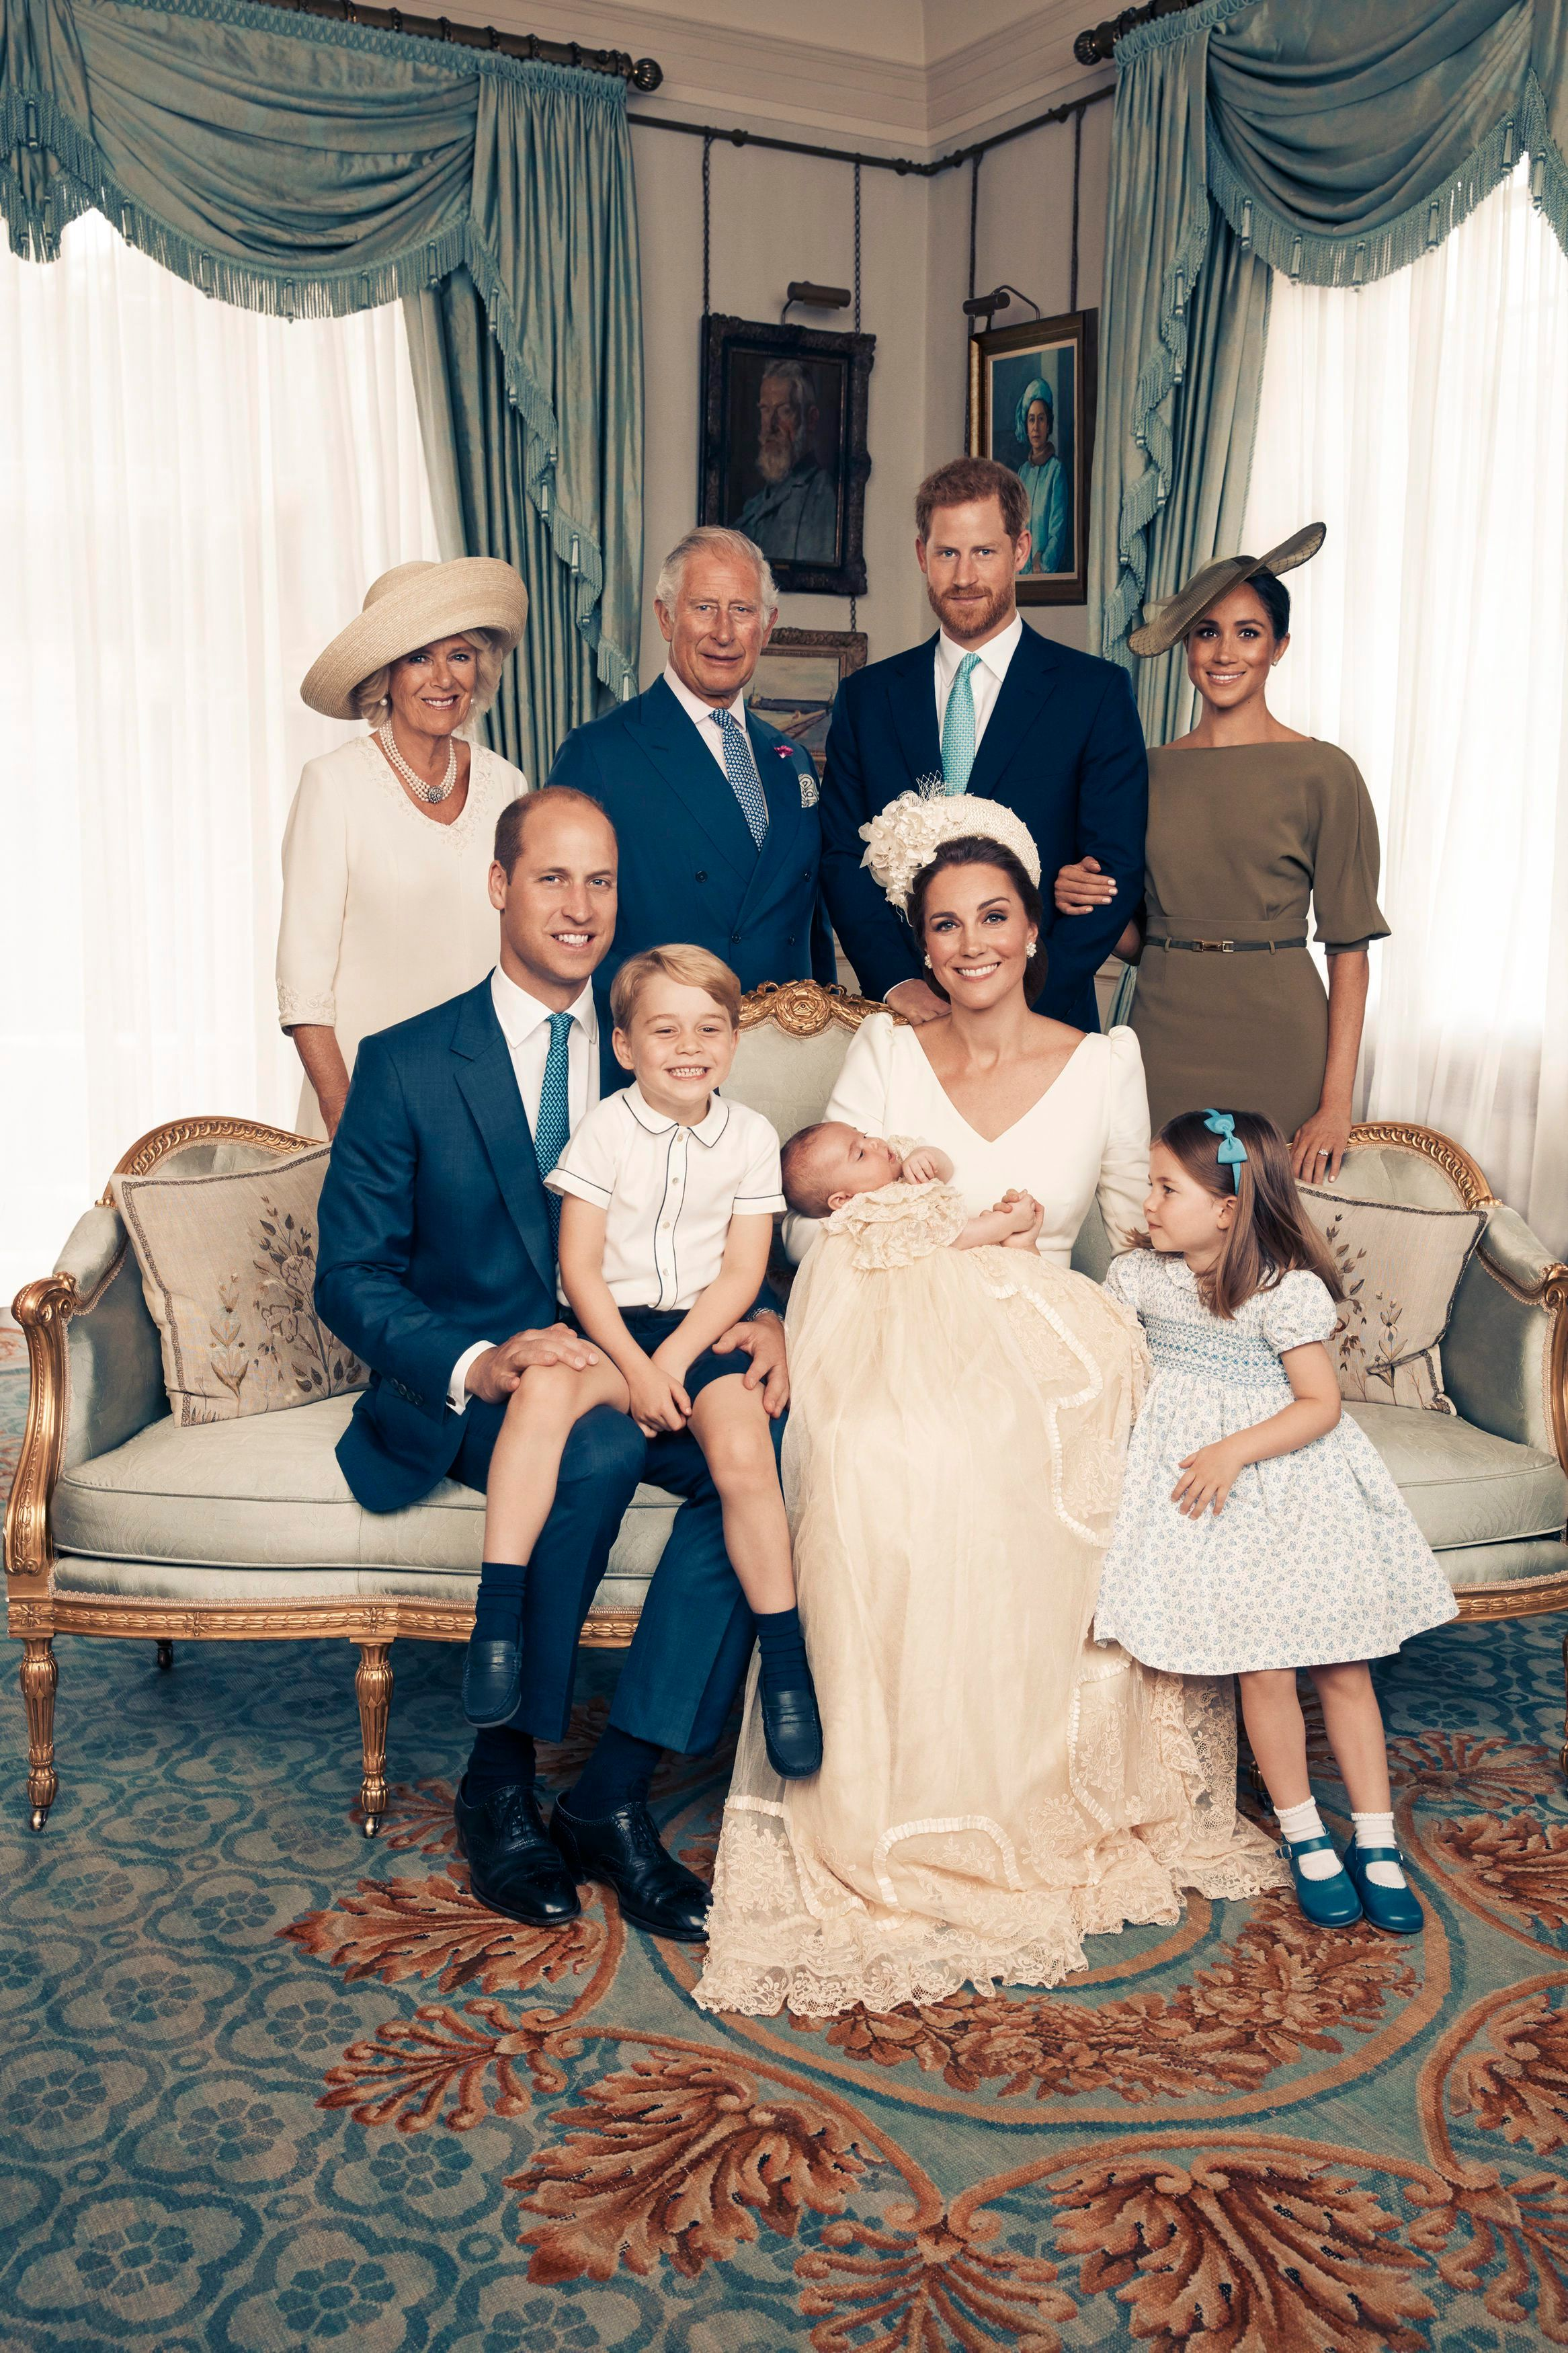 Royals Quiz: How Well Do You Actually Know The Royal Family? - Fame10